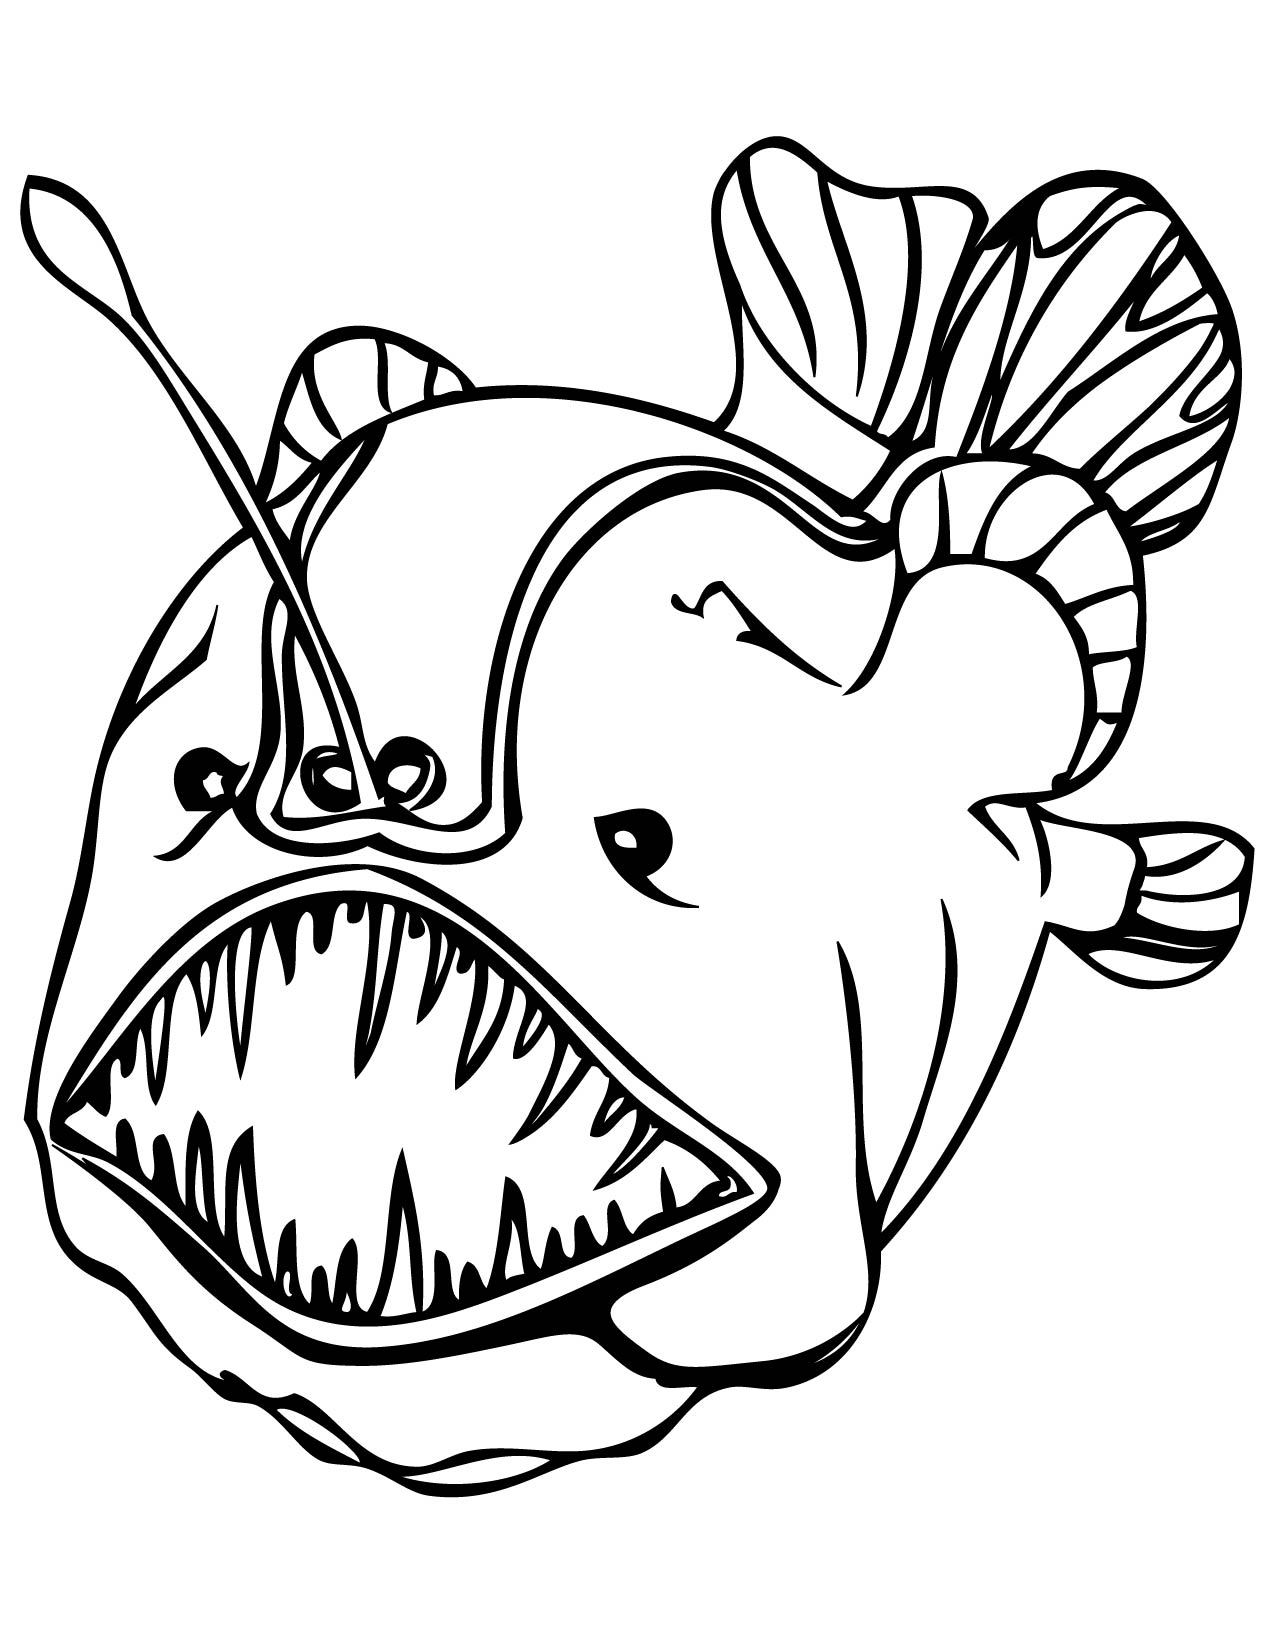 Sea fish coloring pages download and print for free for Printable fish coloring pages